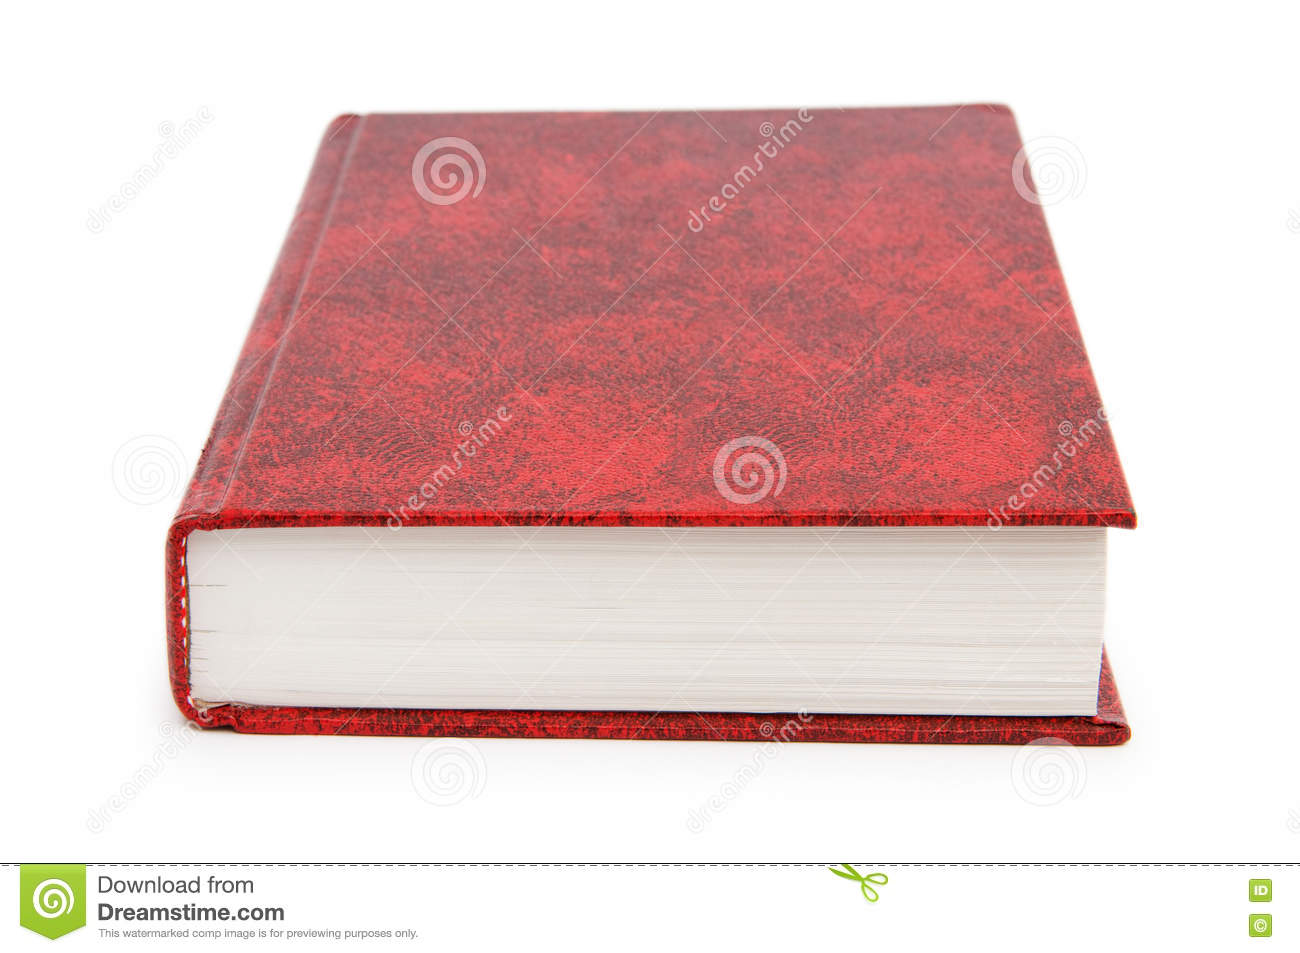 Book Cover White Background : The red cover book isolated on white background stock